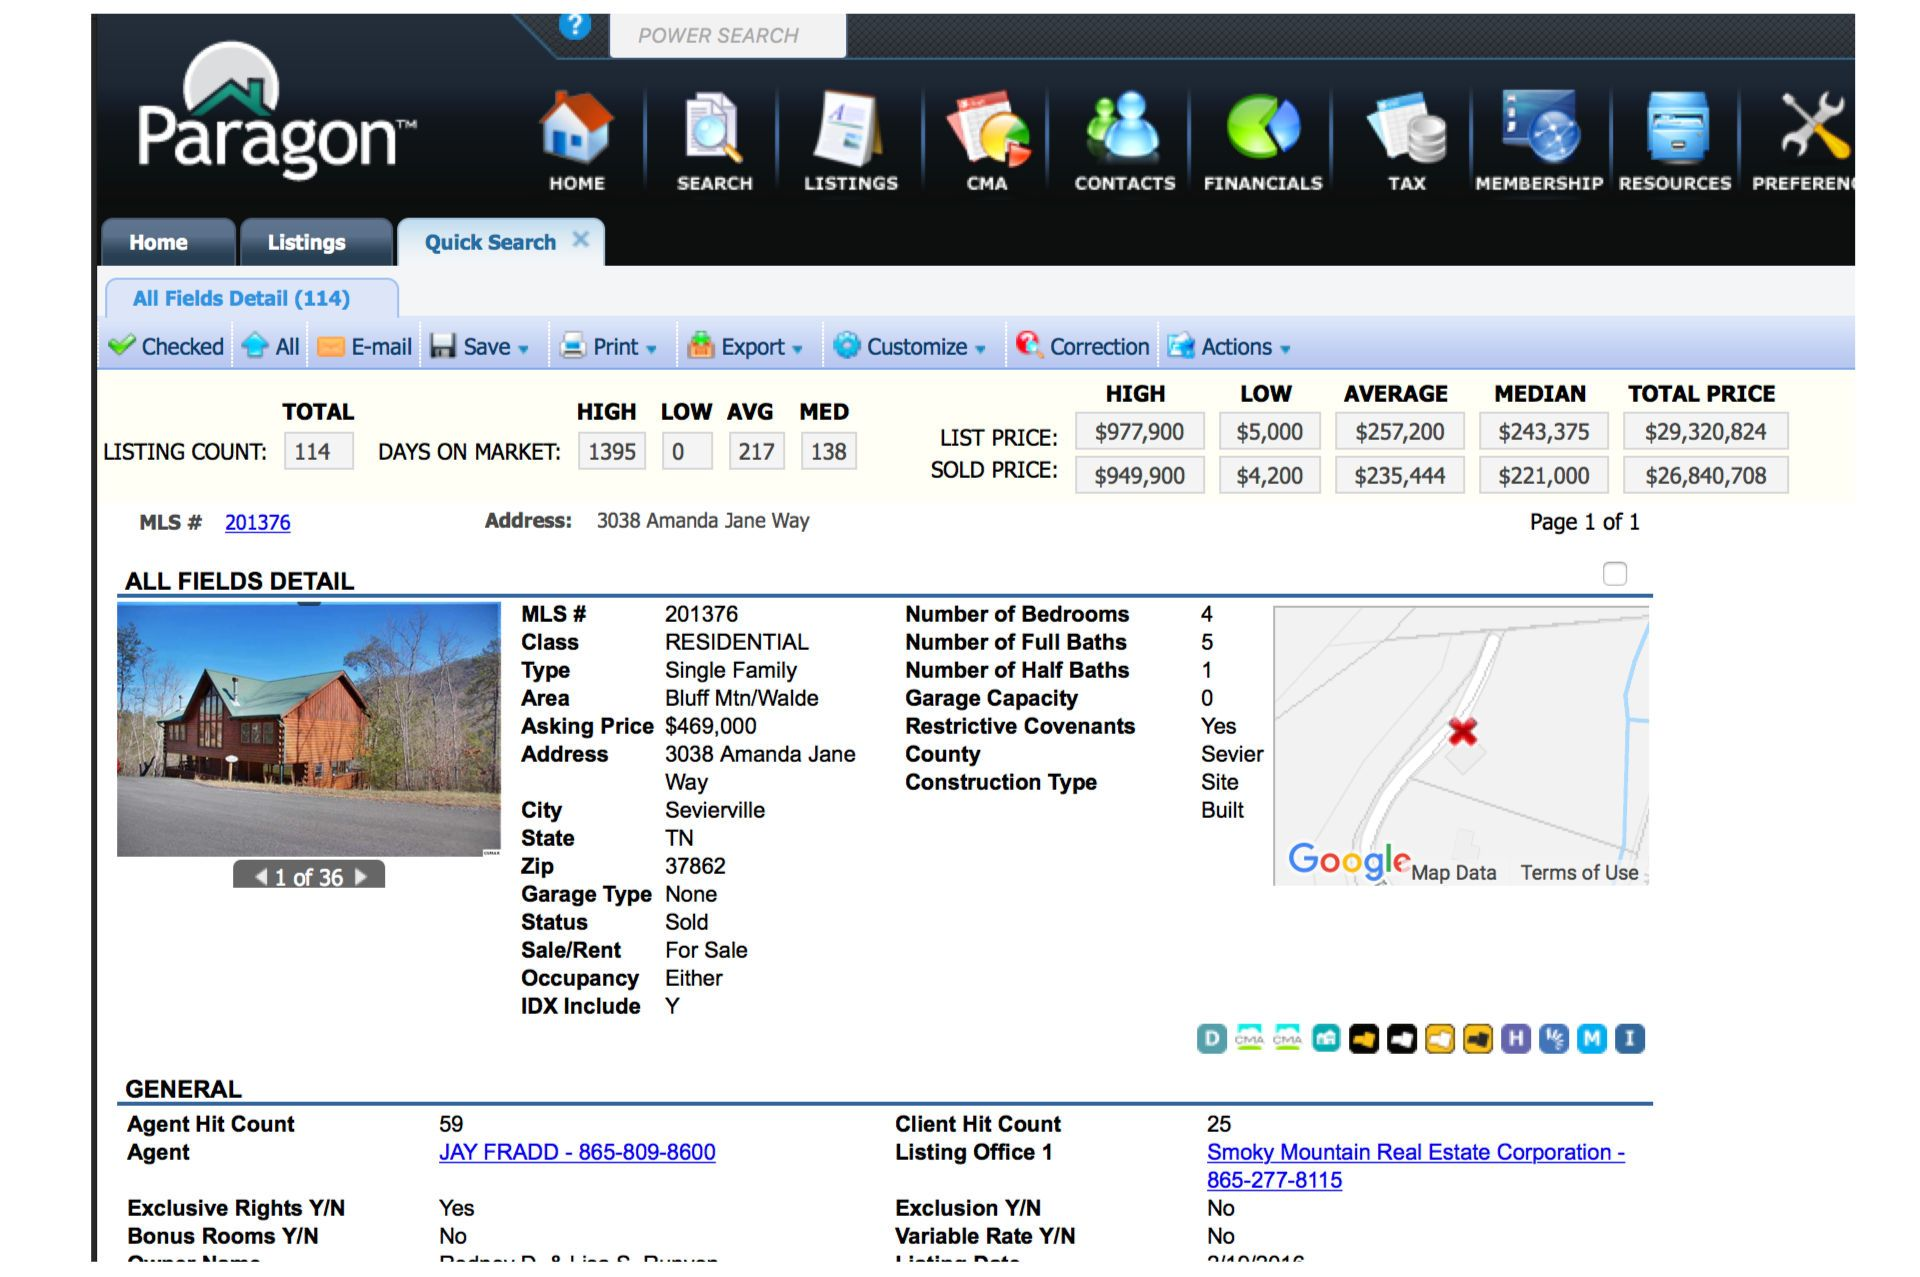 Search Gatlinburg, Pigeon Forge, and Sevierville in the Great Smoky Mountains Association of Realtors MLS Search